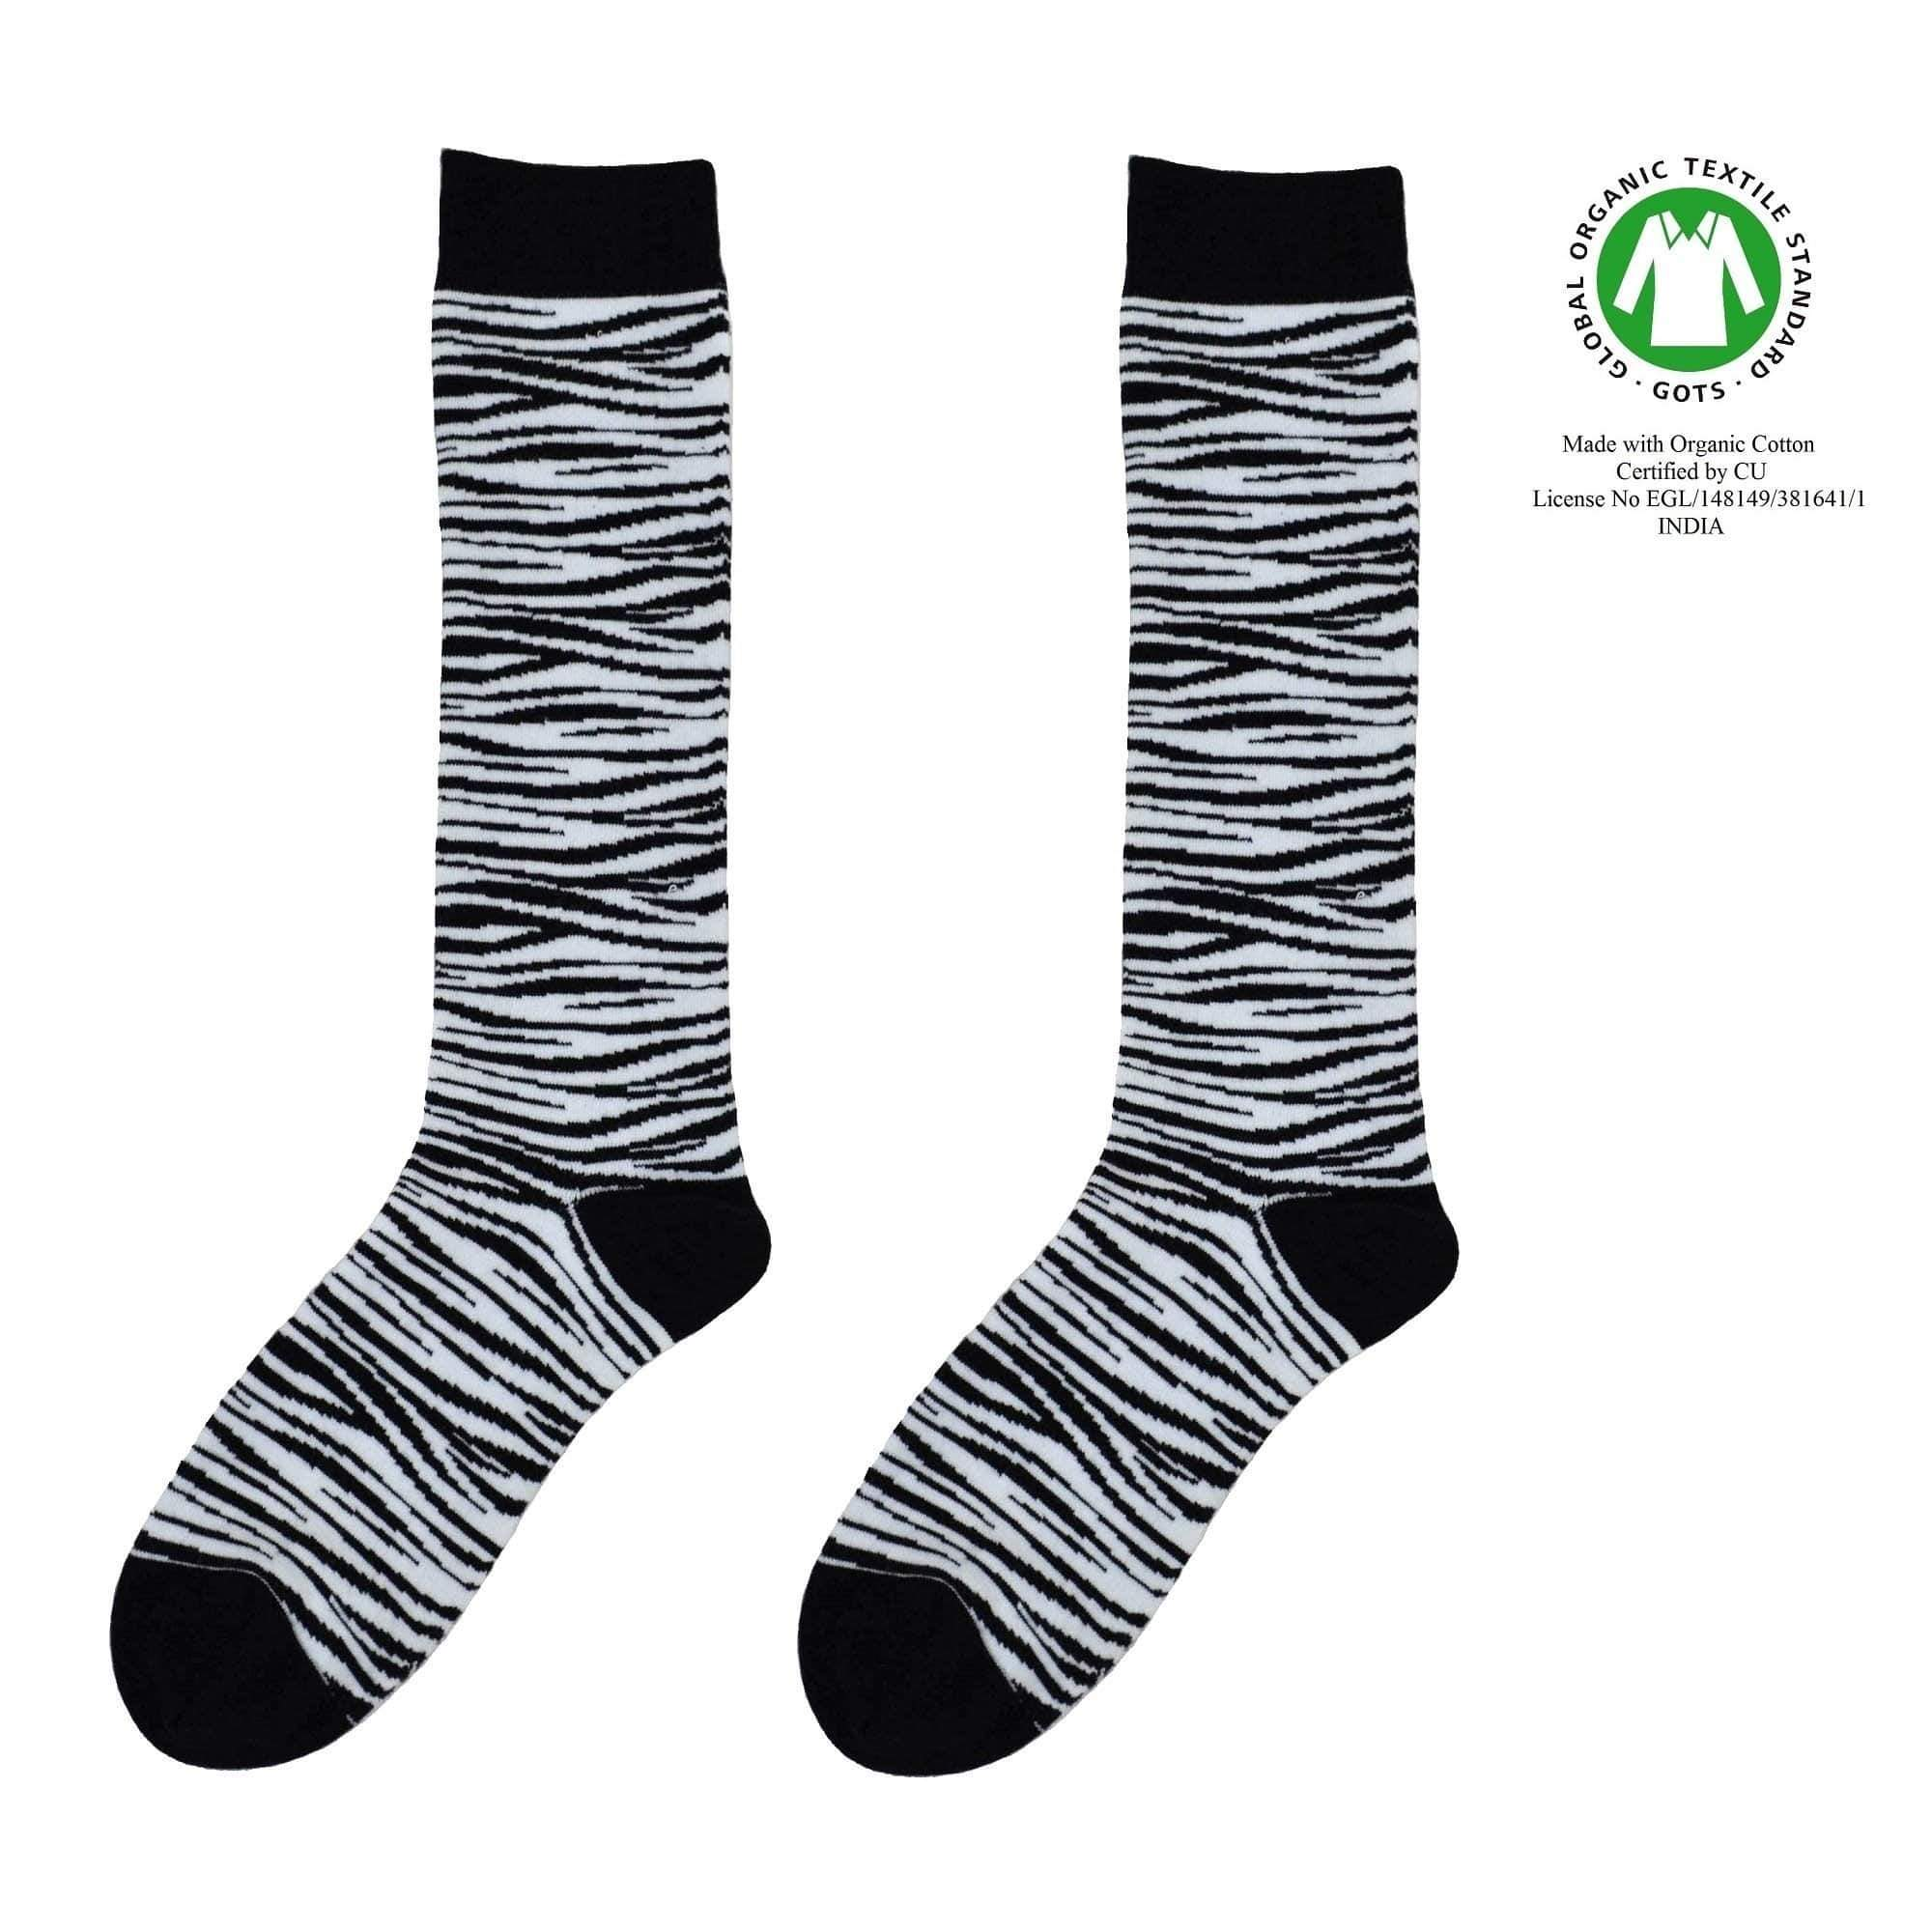 Organic Socks of Sweden sock Björklund Socks. Organic Cotton. sustainable fashion ethical fashion